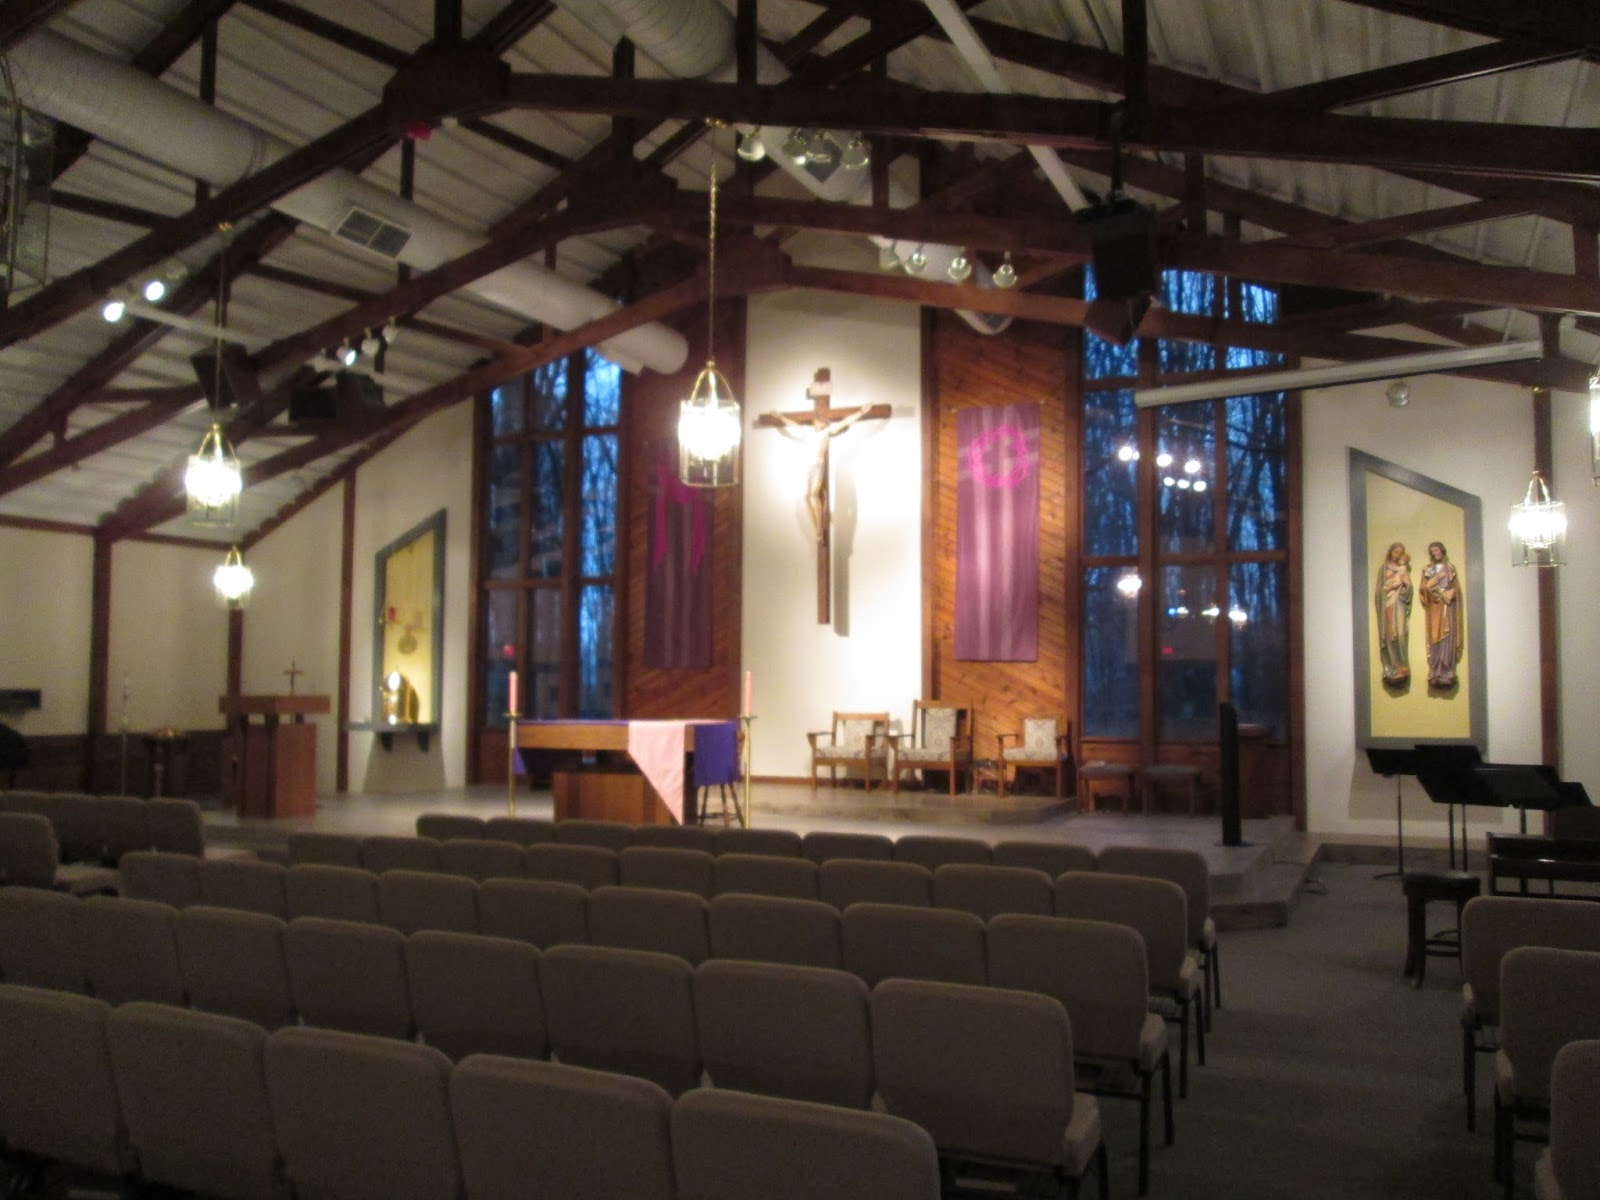 Henninger s Herald St Julie Billiart Church Sanctuary Renovation